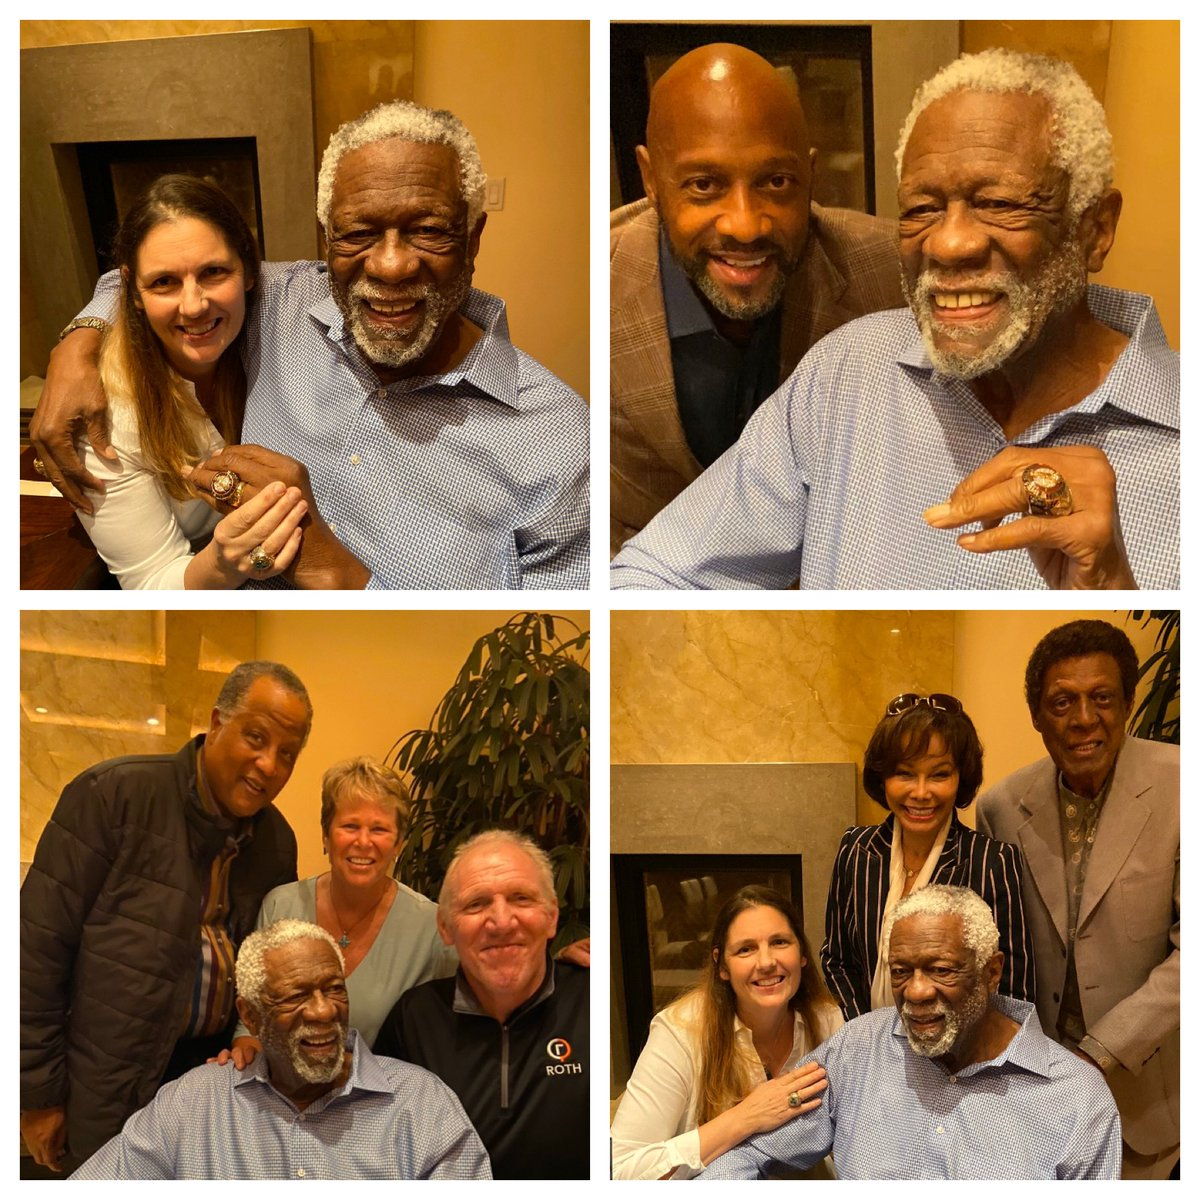 In a private ceremony w/my wife & close friends A.Mourning @AnnMeyers @billwalton & others I accepted my #HOF ring. In '75 I refused being the 1st black player to go into the @Hoophall I felt others before me should have that honor. Good to see progress; ChuckCooperHOF19 @NBA